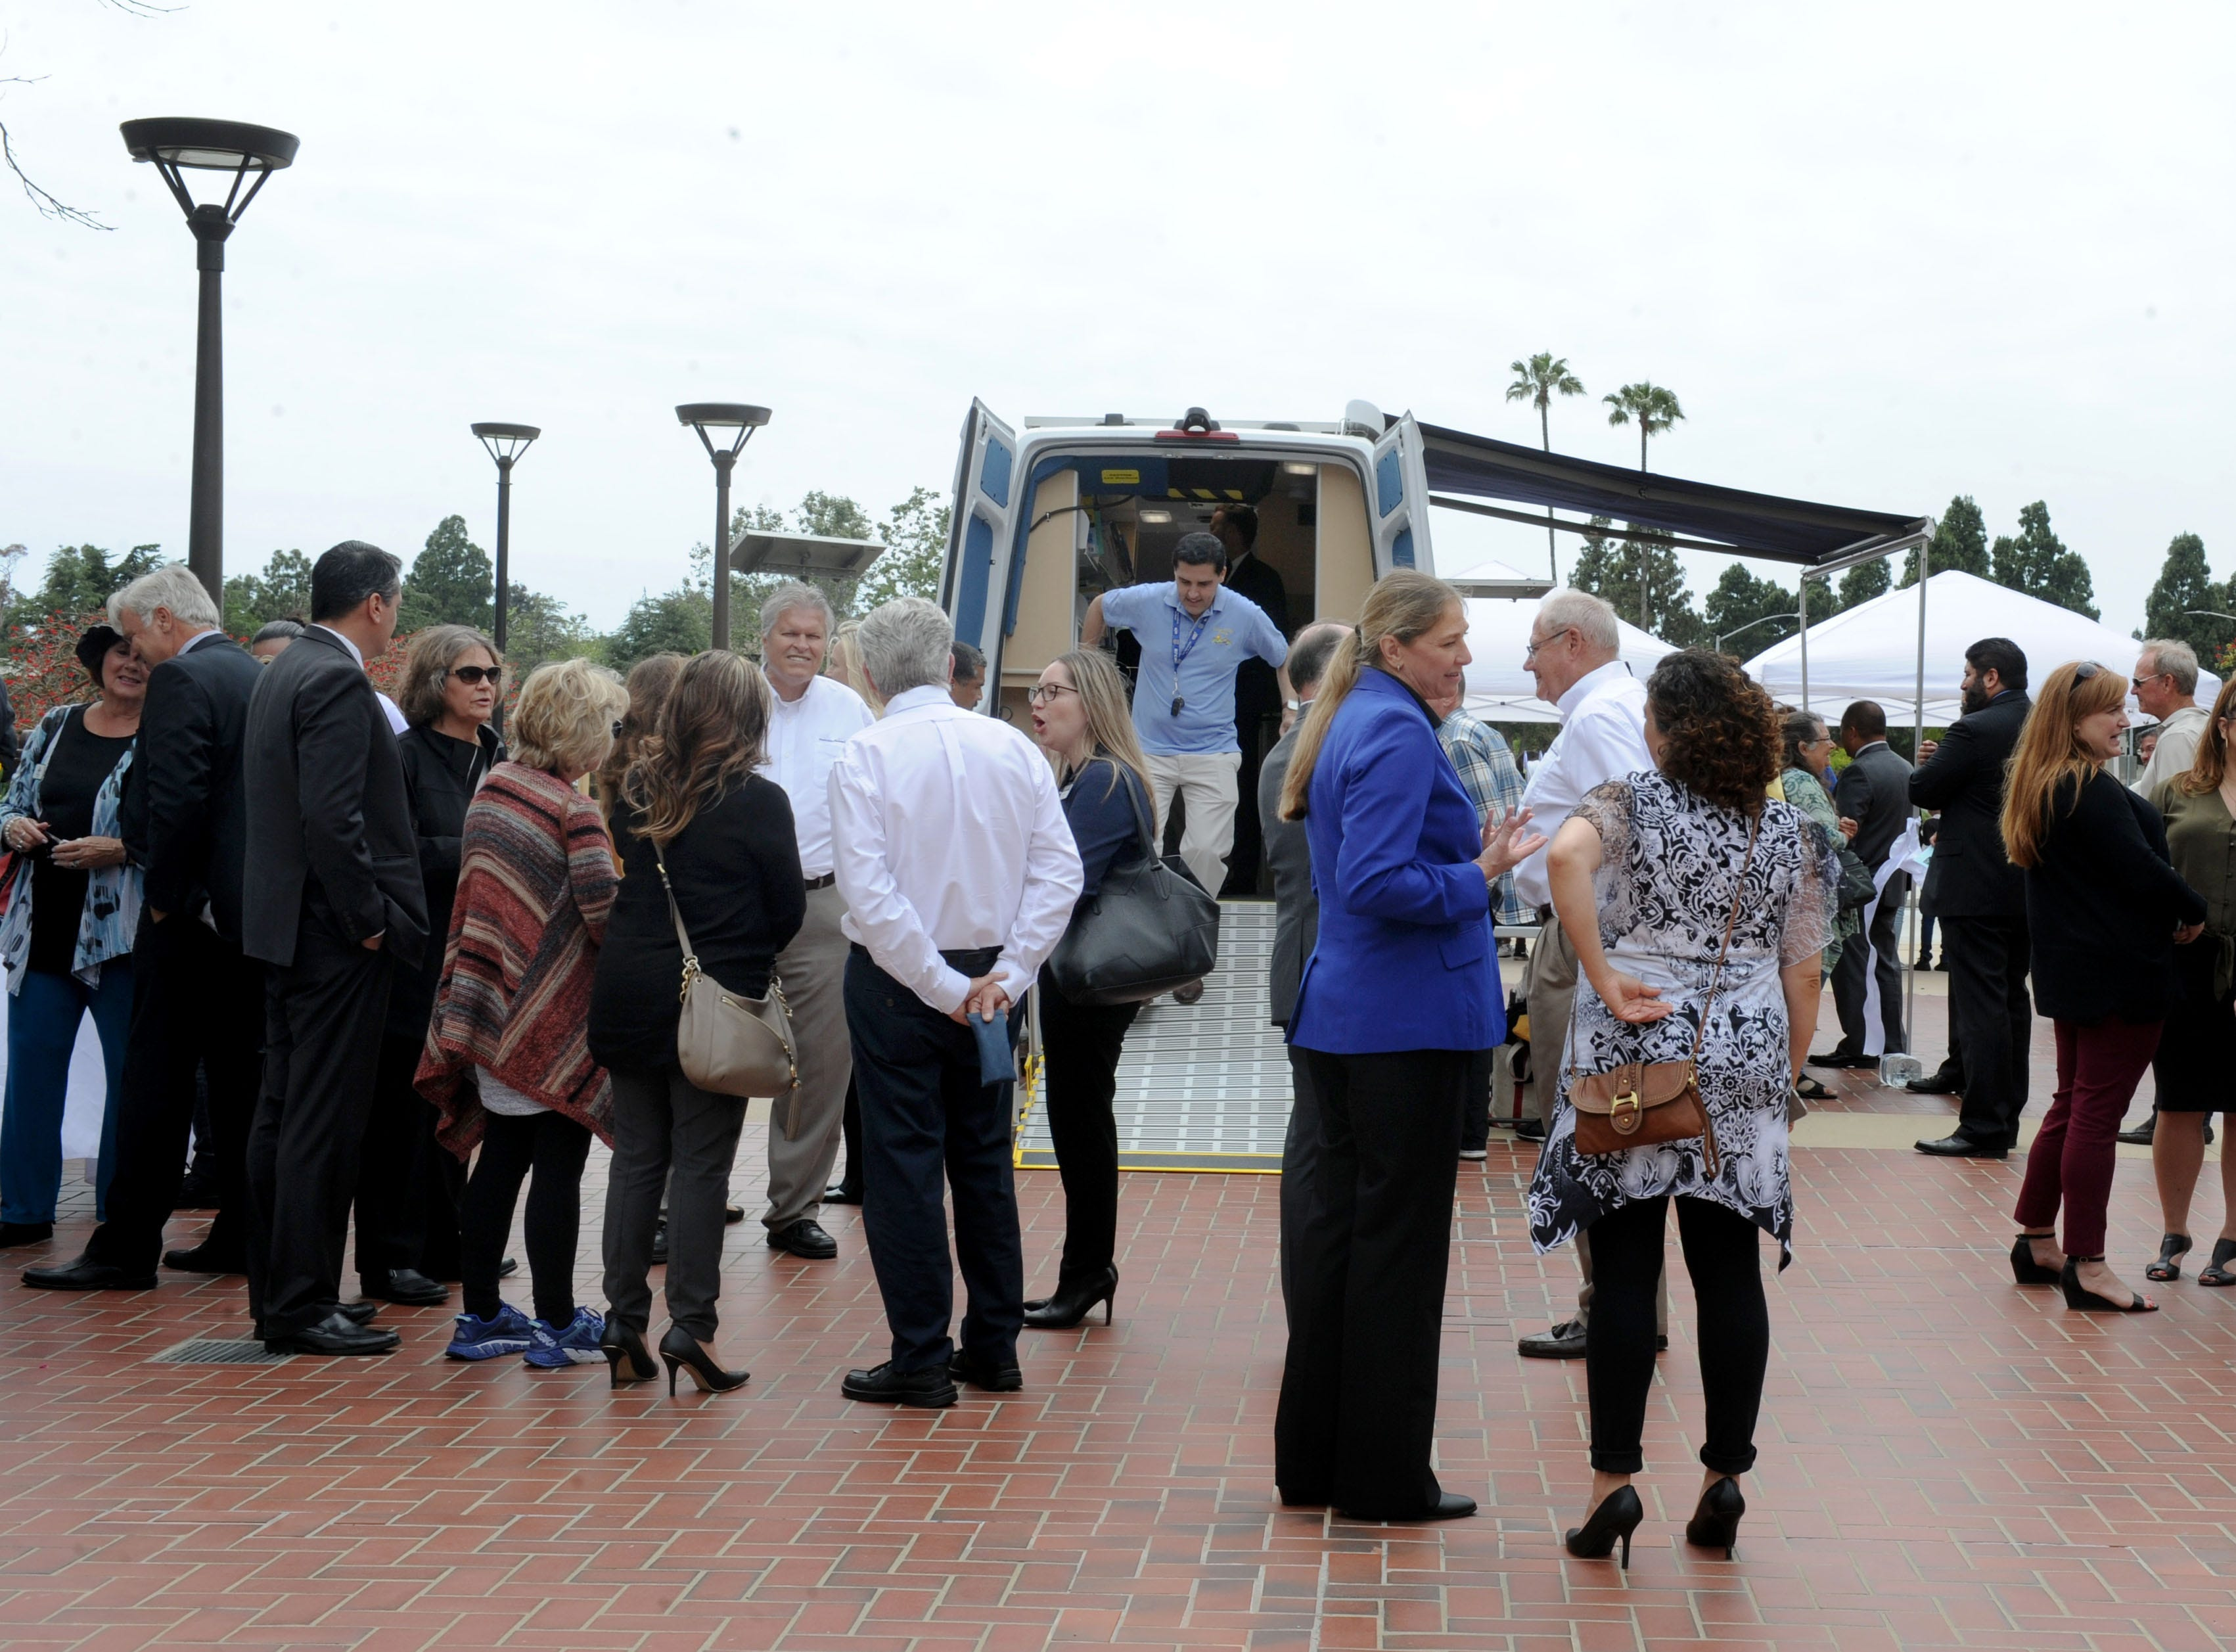 A large group of people gathers Tuesday to tour the Ventura County Library's new mobile library at the Ventura County Government Center.